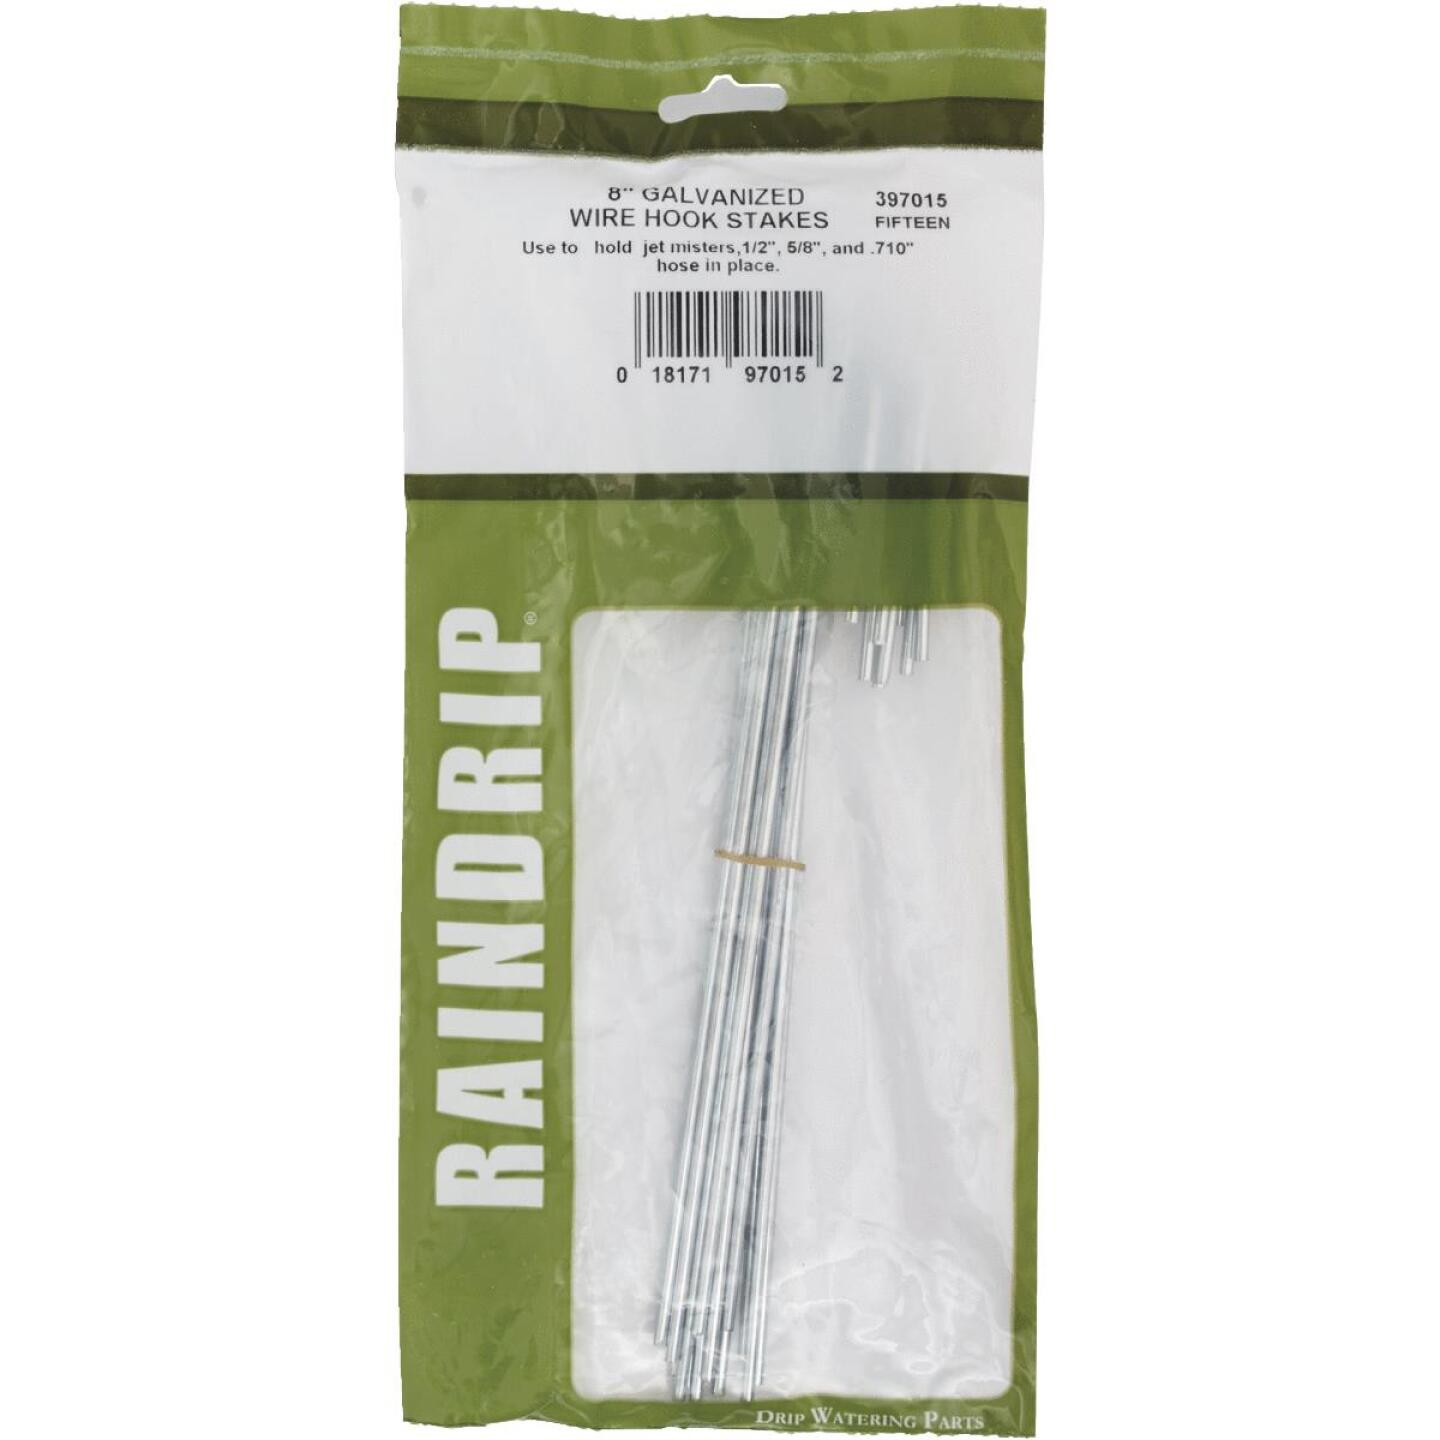 Raindrip 1/2, 5/8, 0.710 In. Tubing Hook Galvanized Wire Stake (15-Pack) Image 2